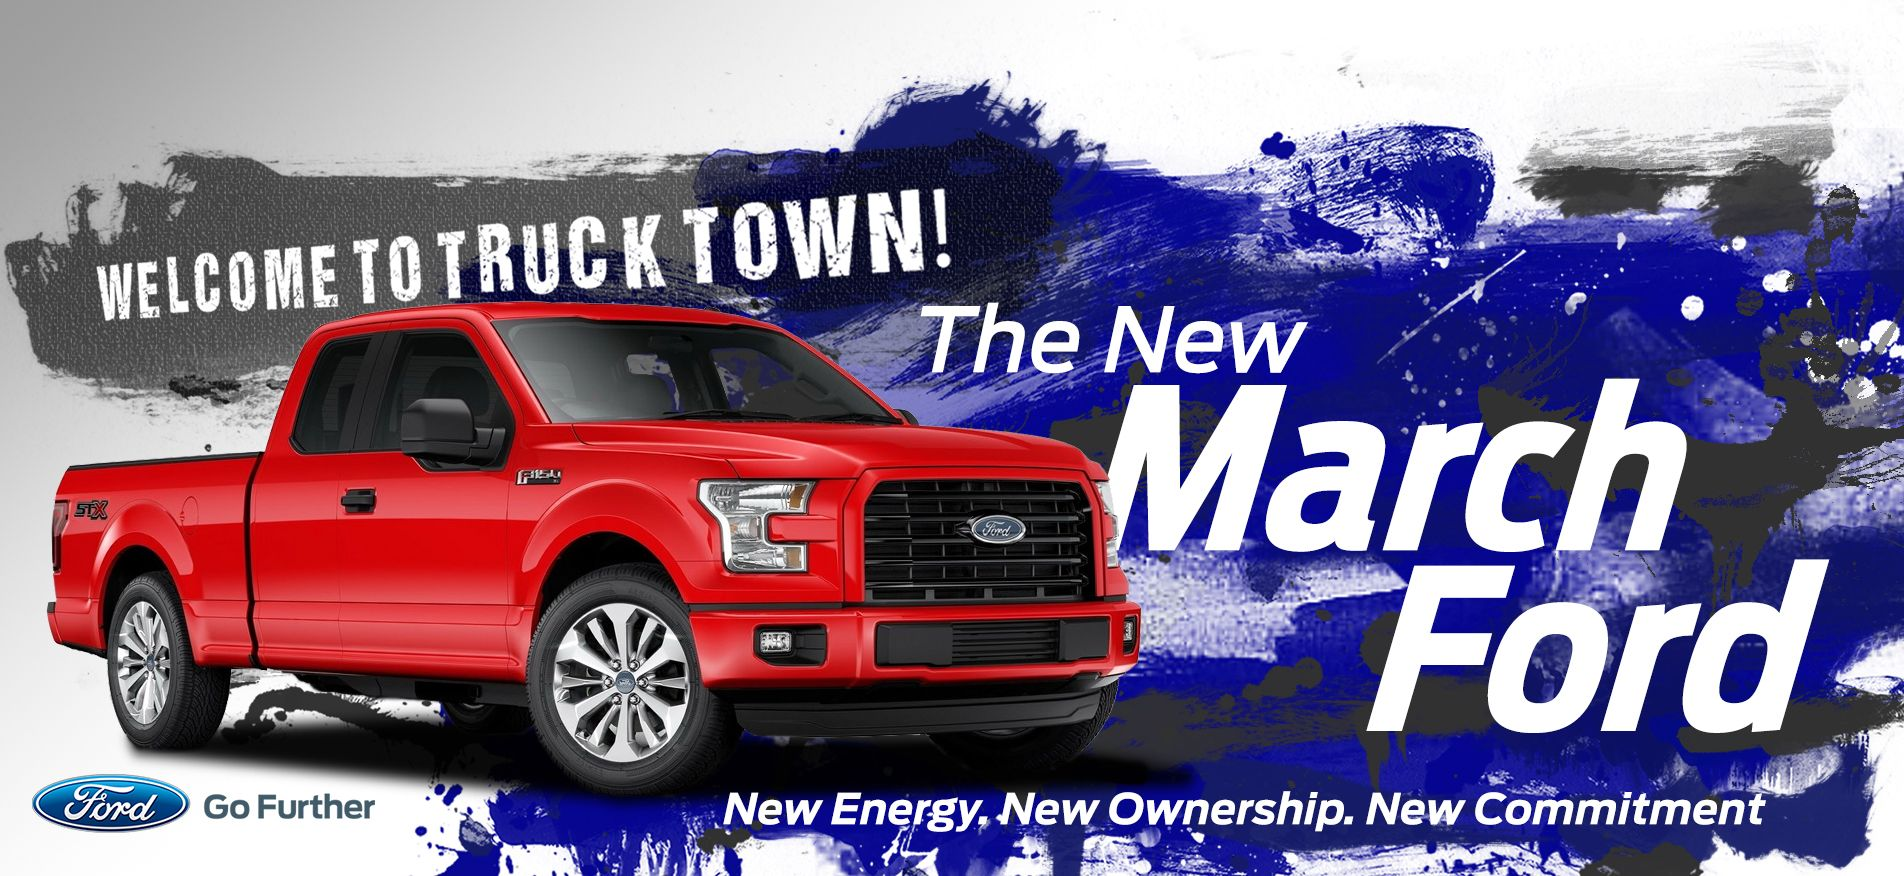 Truck town march ford f 150